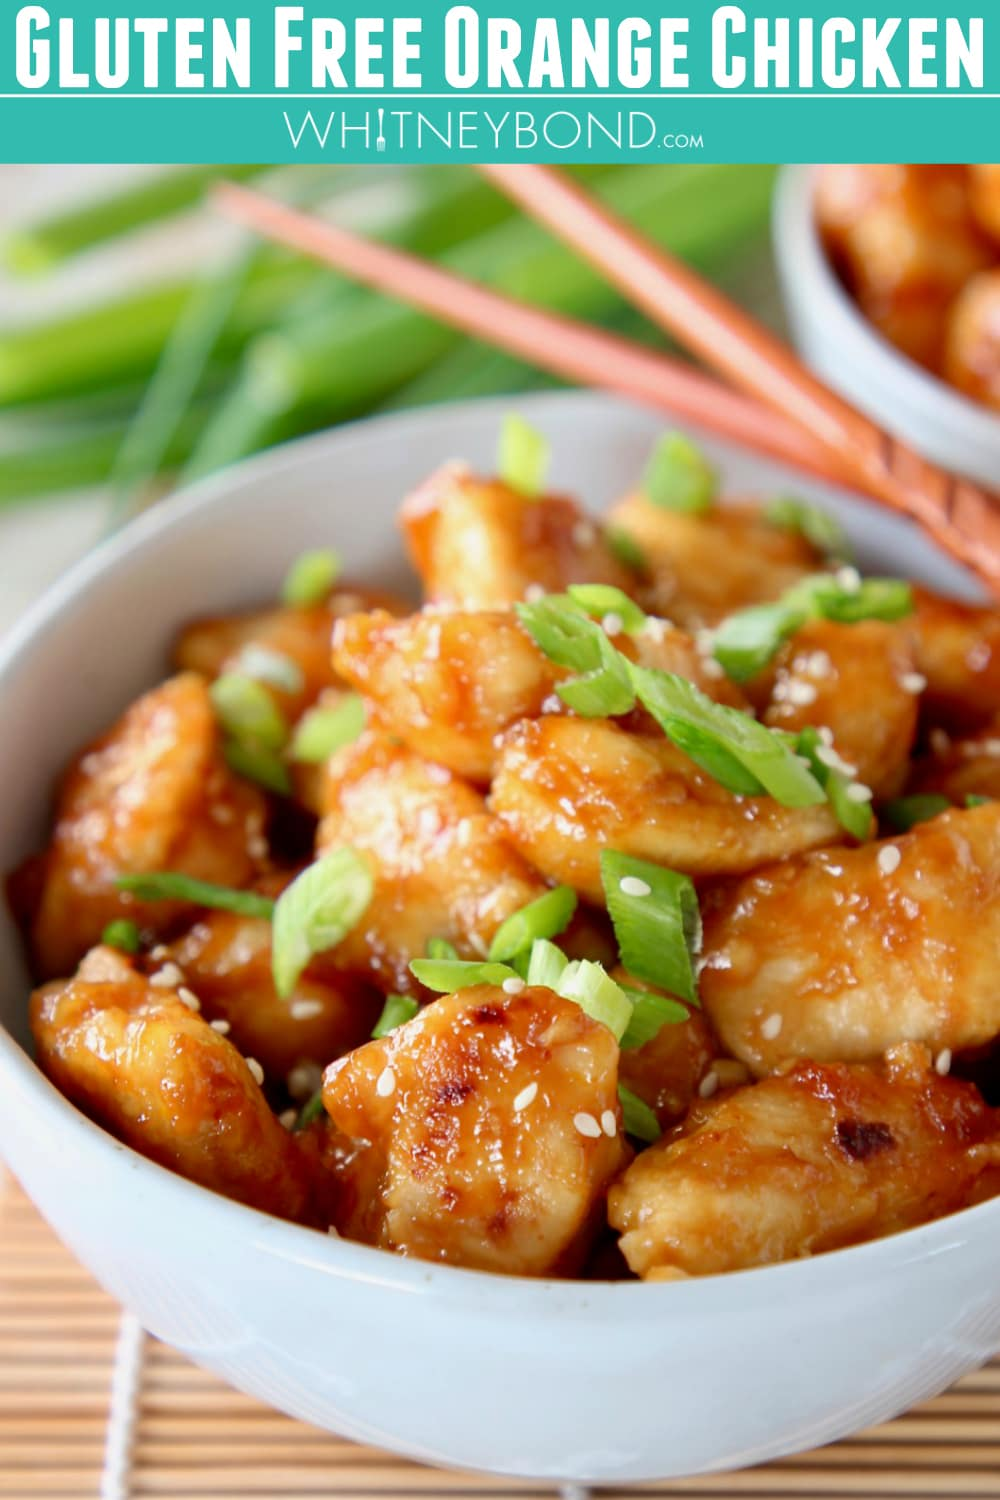 Gluten free orange chicken is a quick & easy recipe with the most delicious sauce that's healthy & more delicious than Chinese restaurant take out! #chineseorangechicken